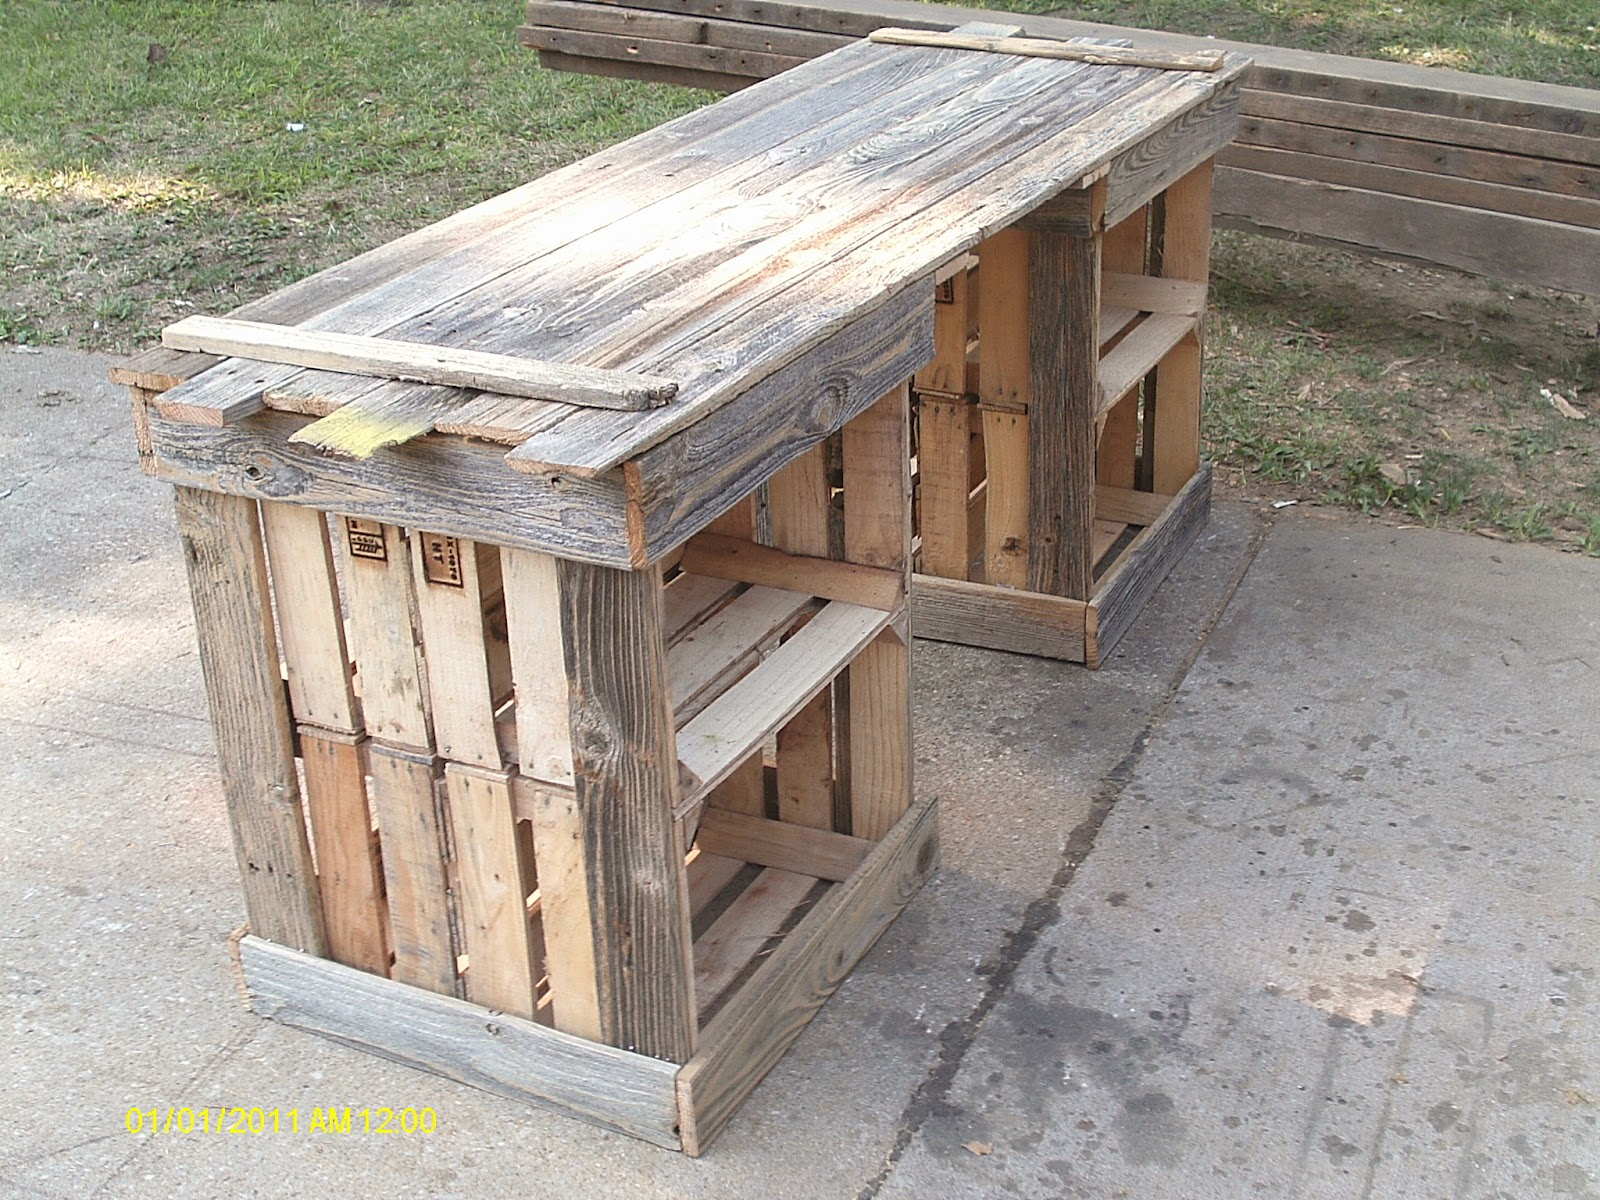 handmade rustic & log furniture: rustic crate table & reclaimed